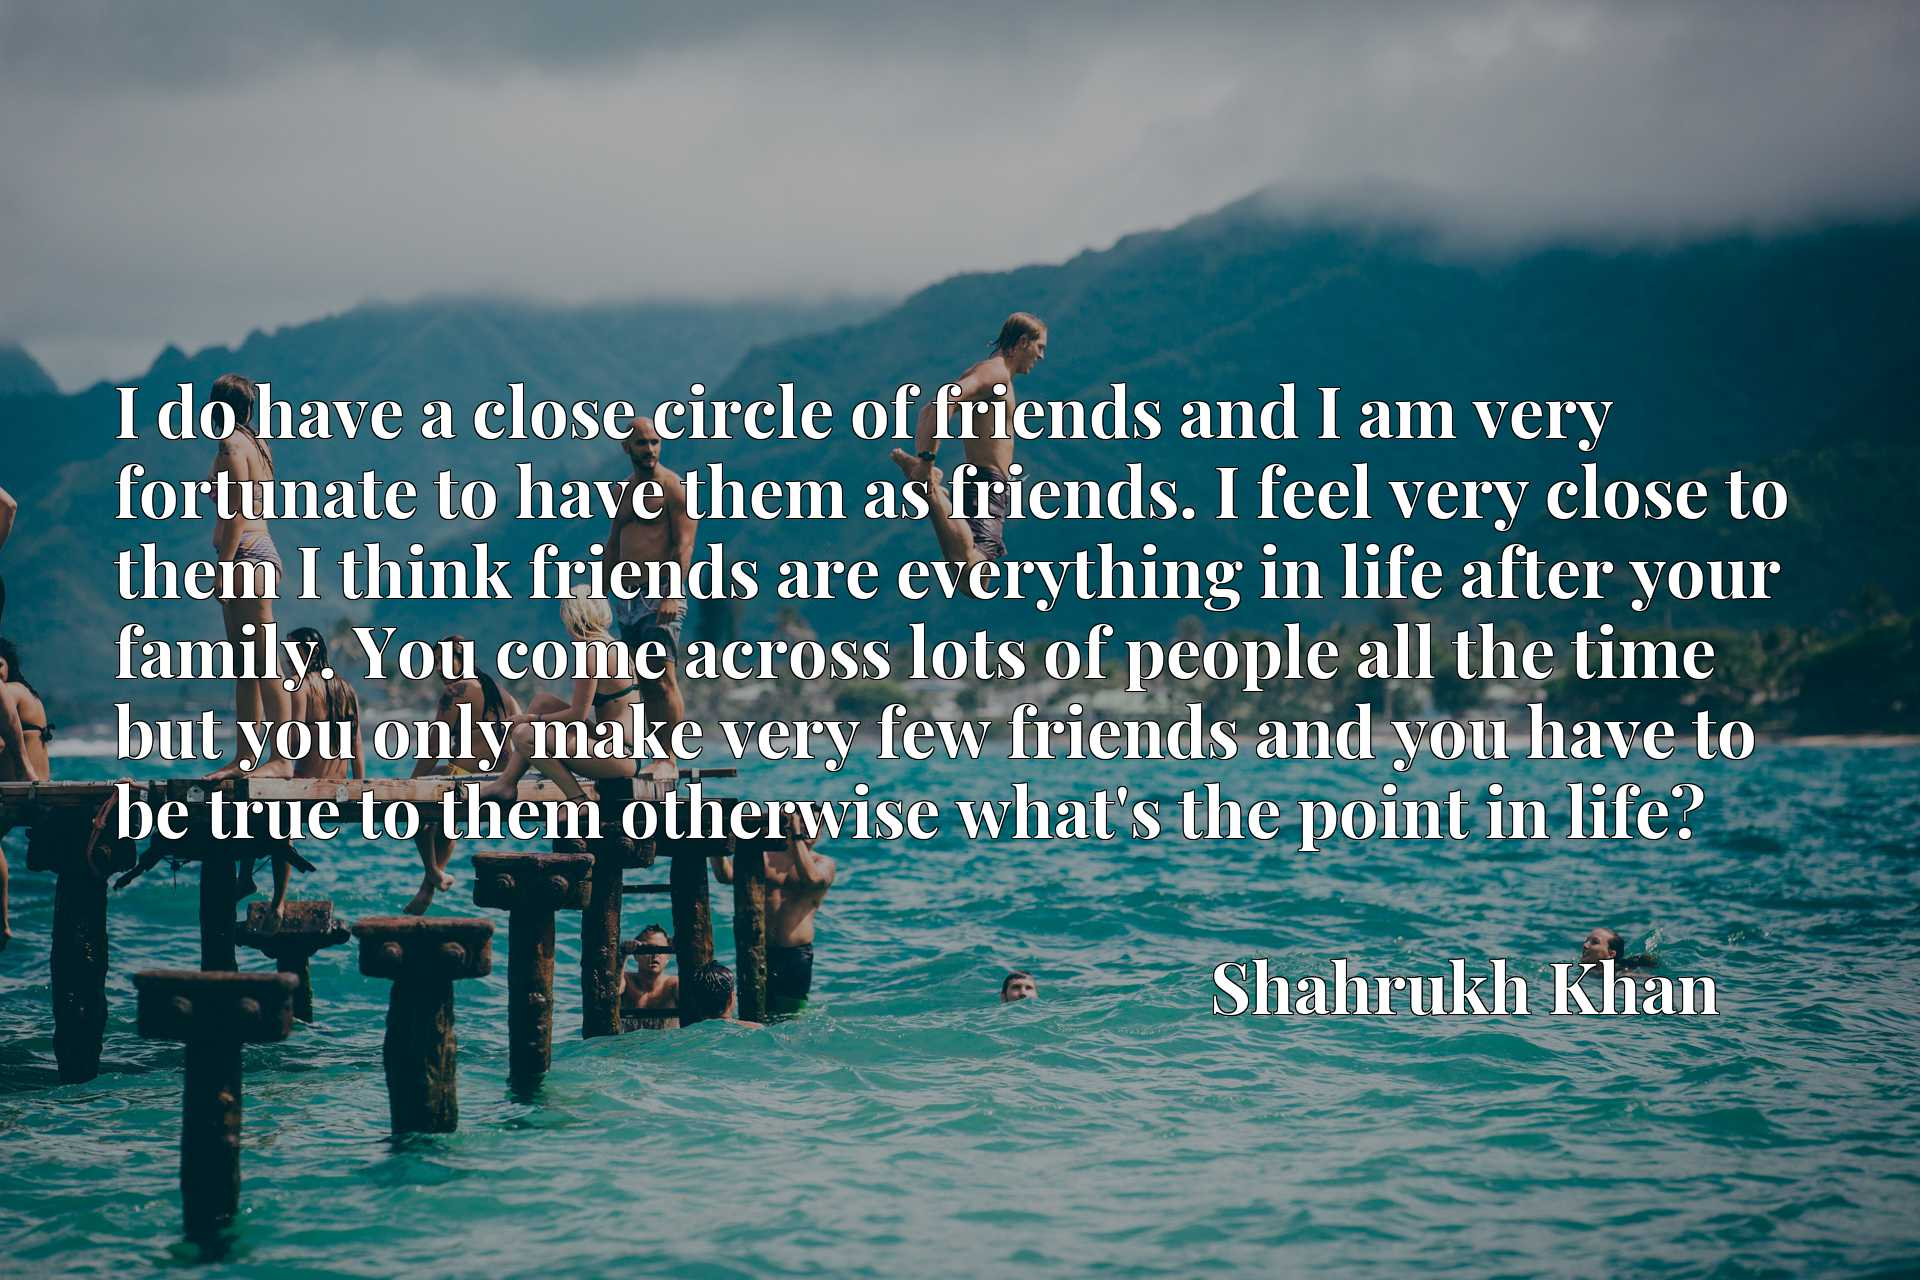 I do have a close circle of friends and I am very fortunate to have them as friends. I feel very close to them I think friends are everything in life after your family. You come across lots of people all the time but you only make very few friends and you have to be true to them otherwise what's the point in life?